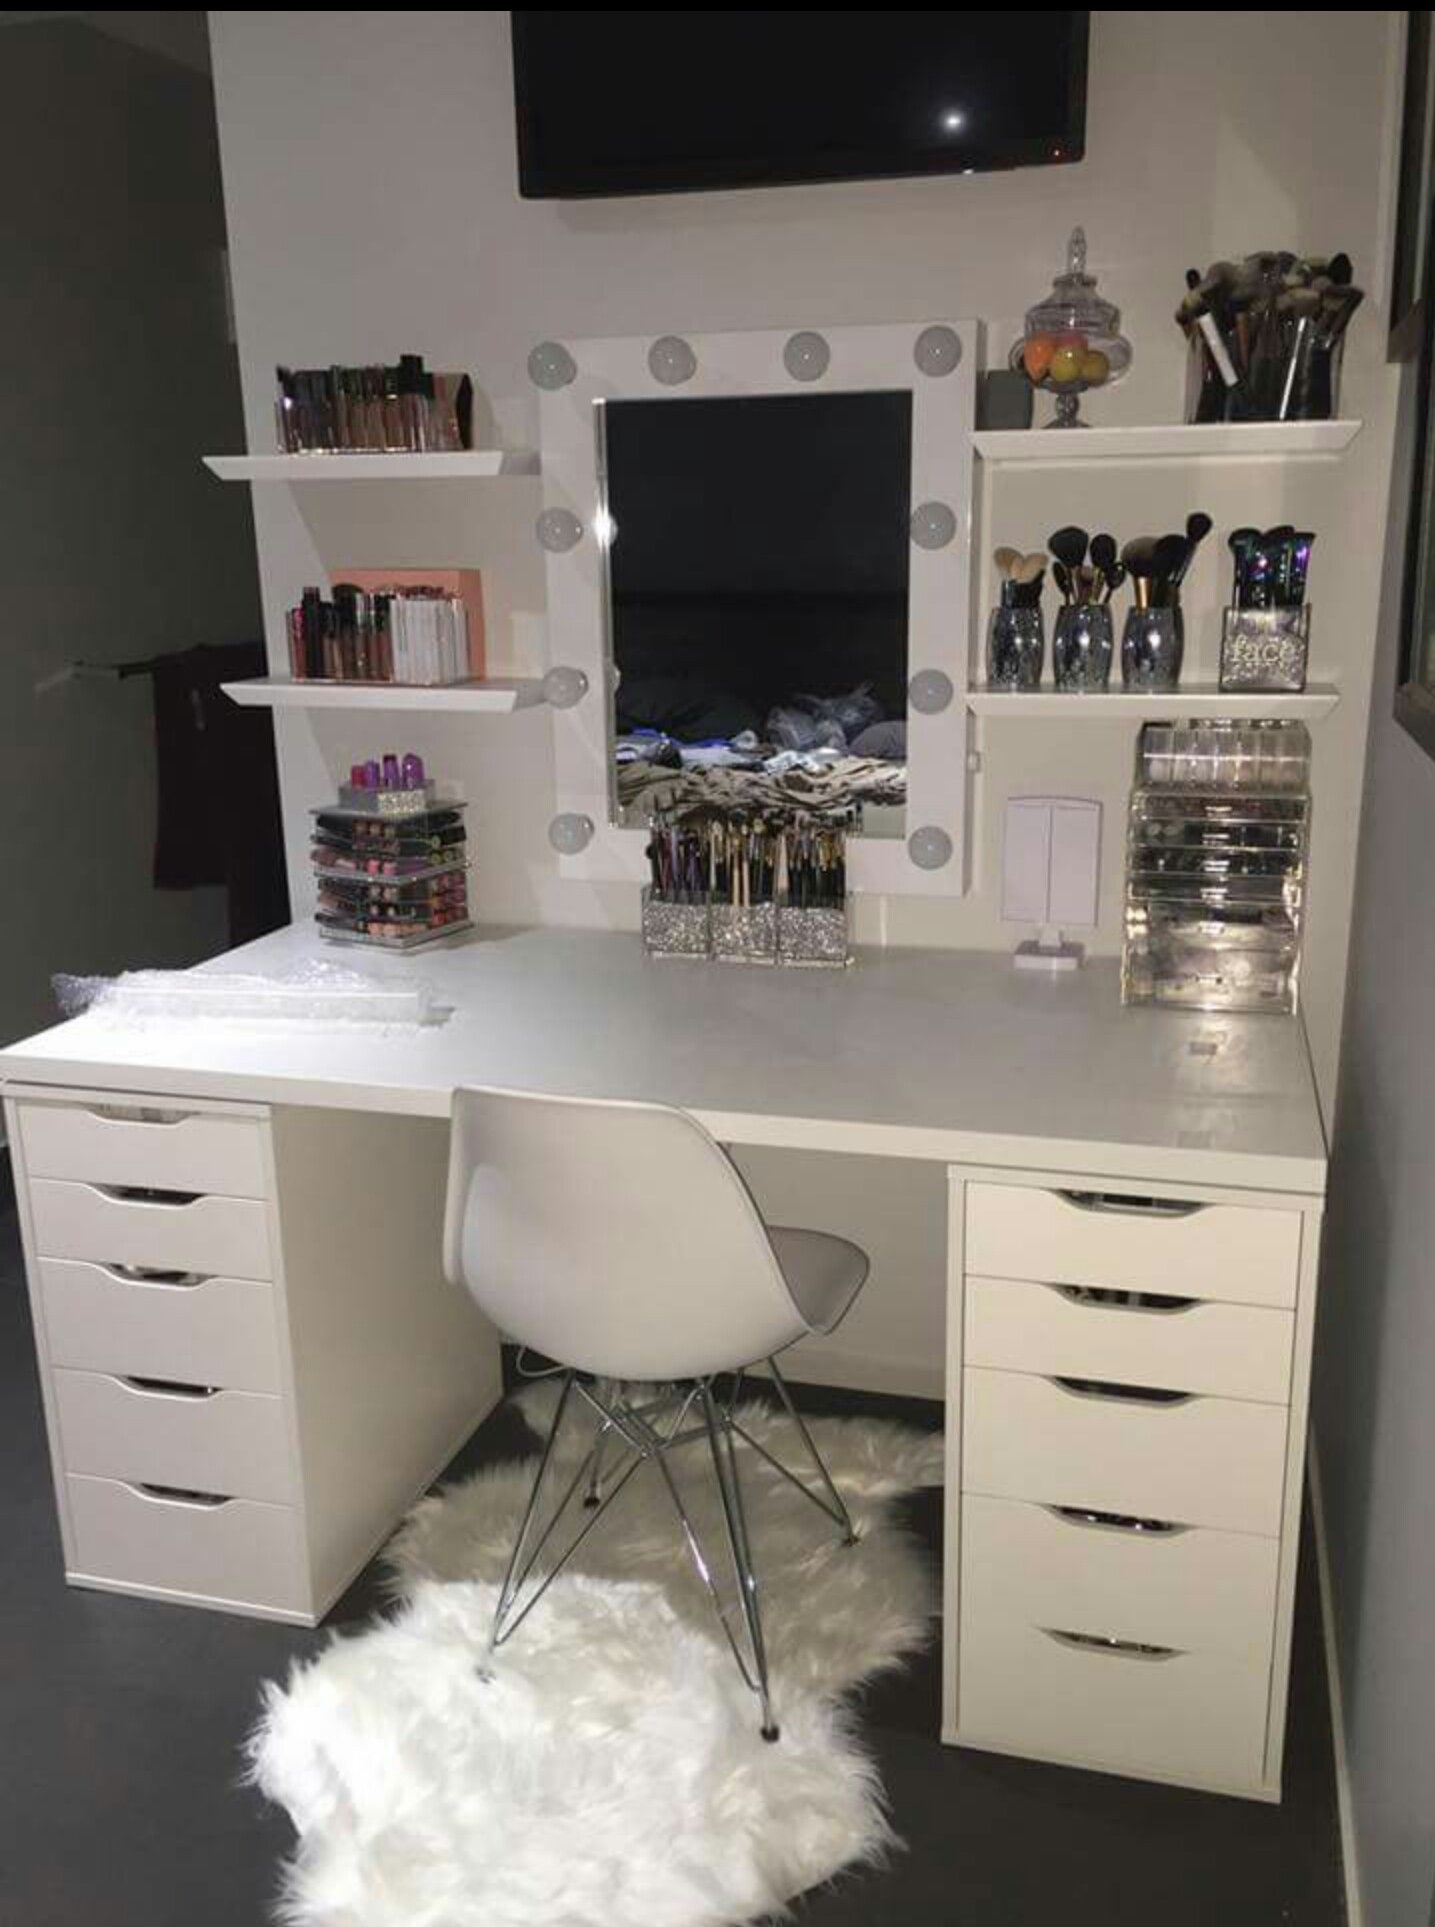 of and charming ideas nice professional table on vanity lights astonishing within with diy gallery makeup inside full uncategorized size inspiring best